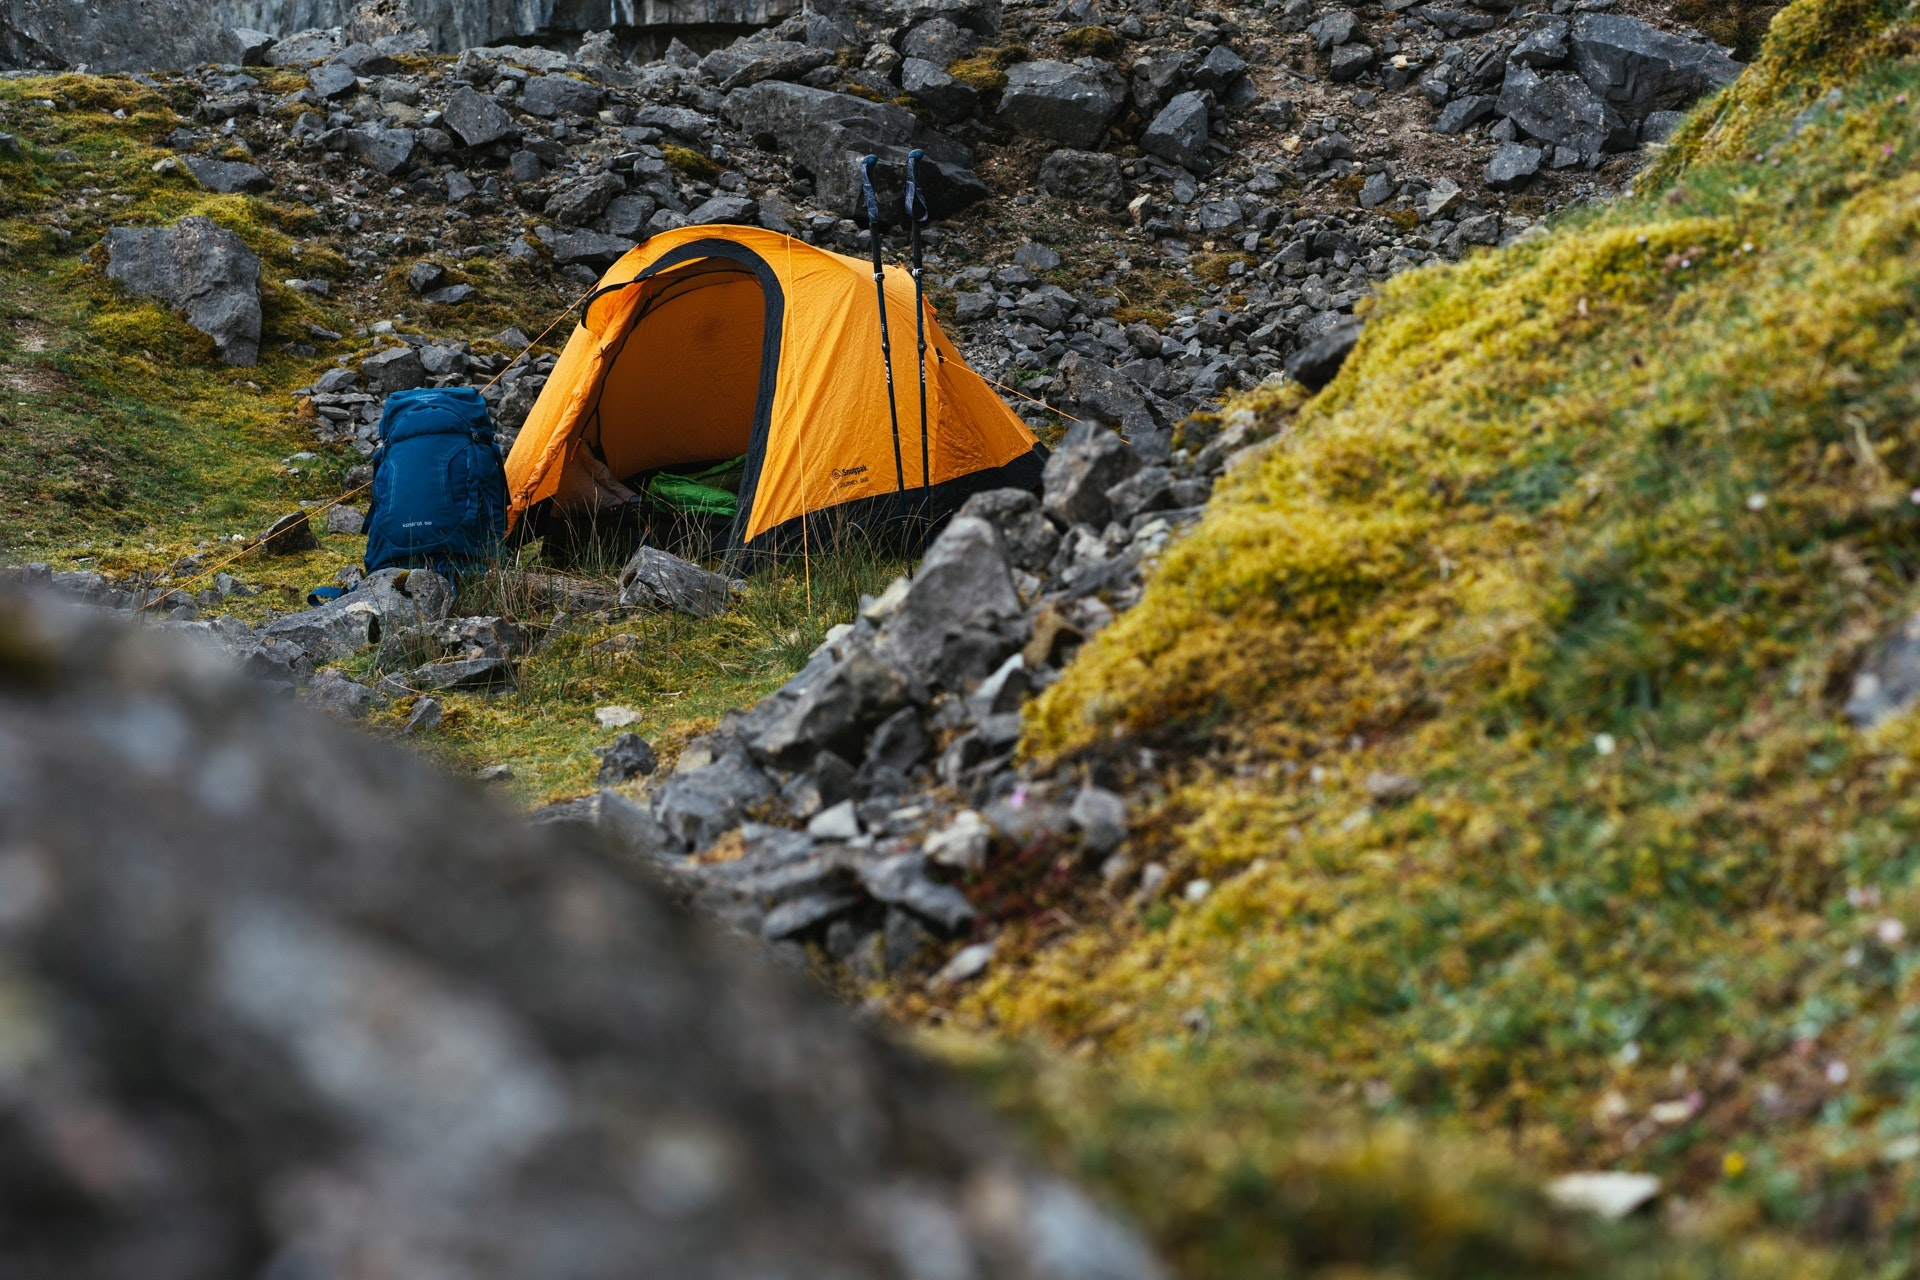 How To Take Care Of Your Tent | Essential Advice - Outdoors Magic